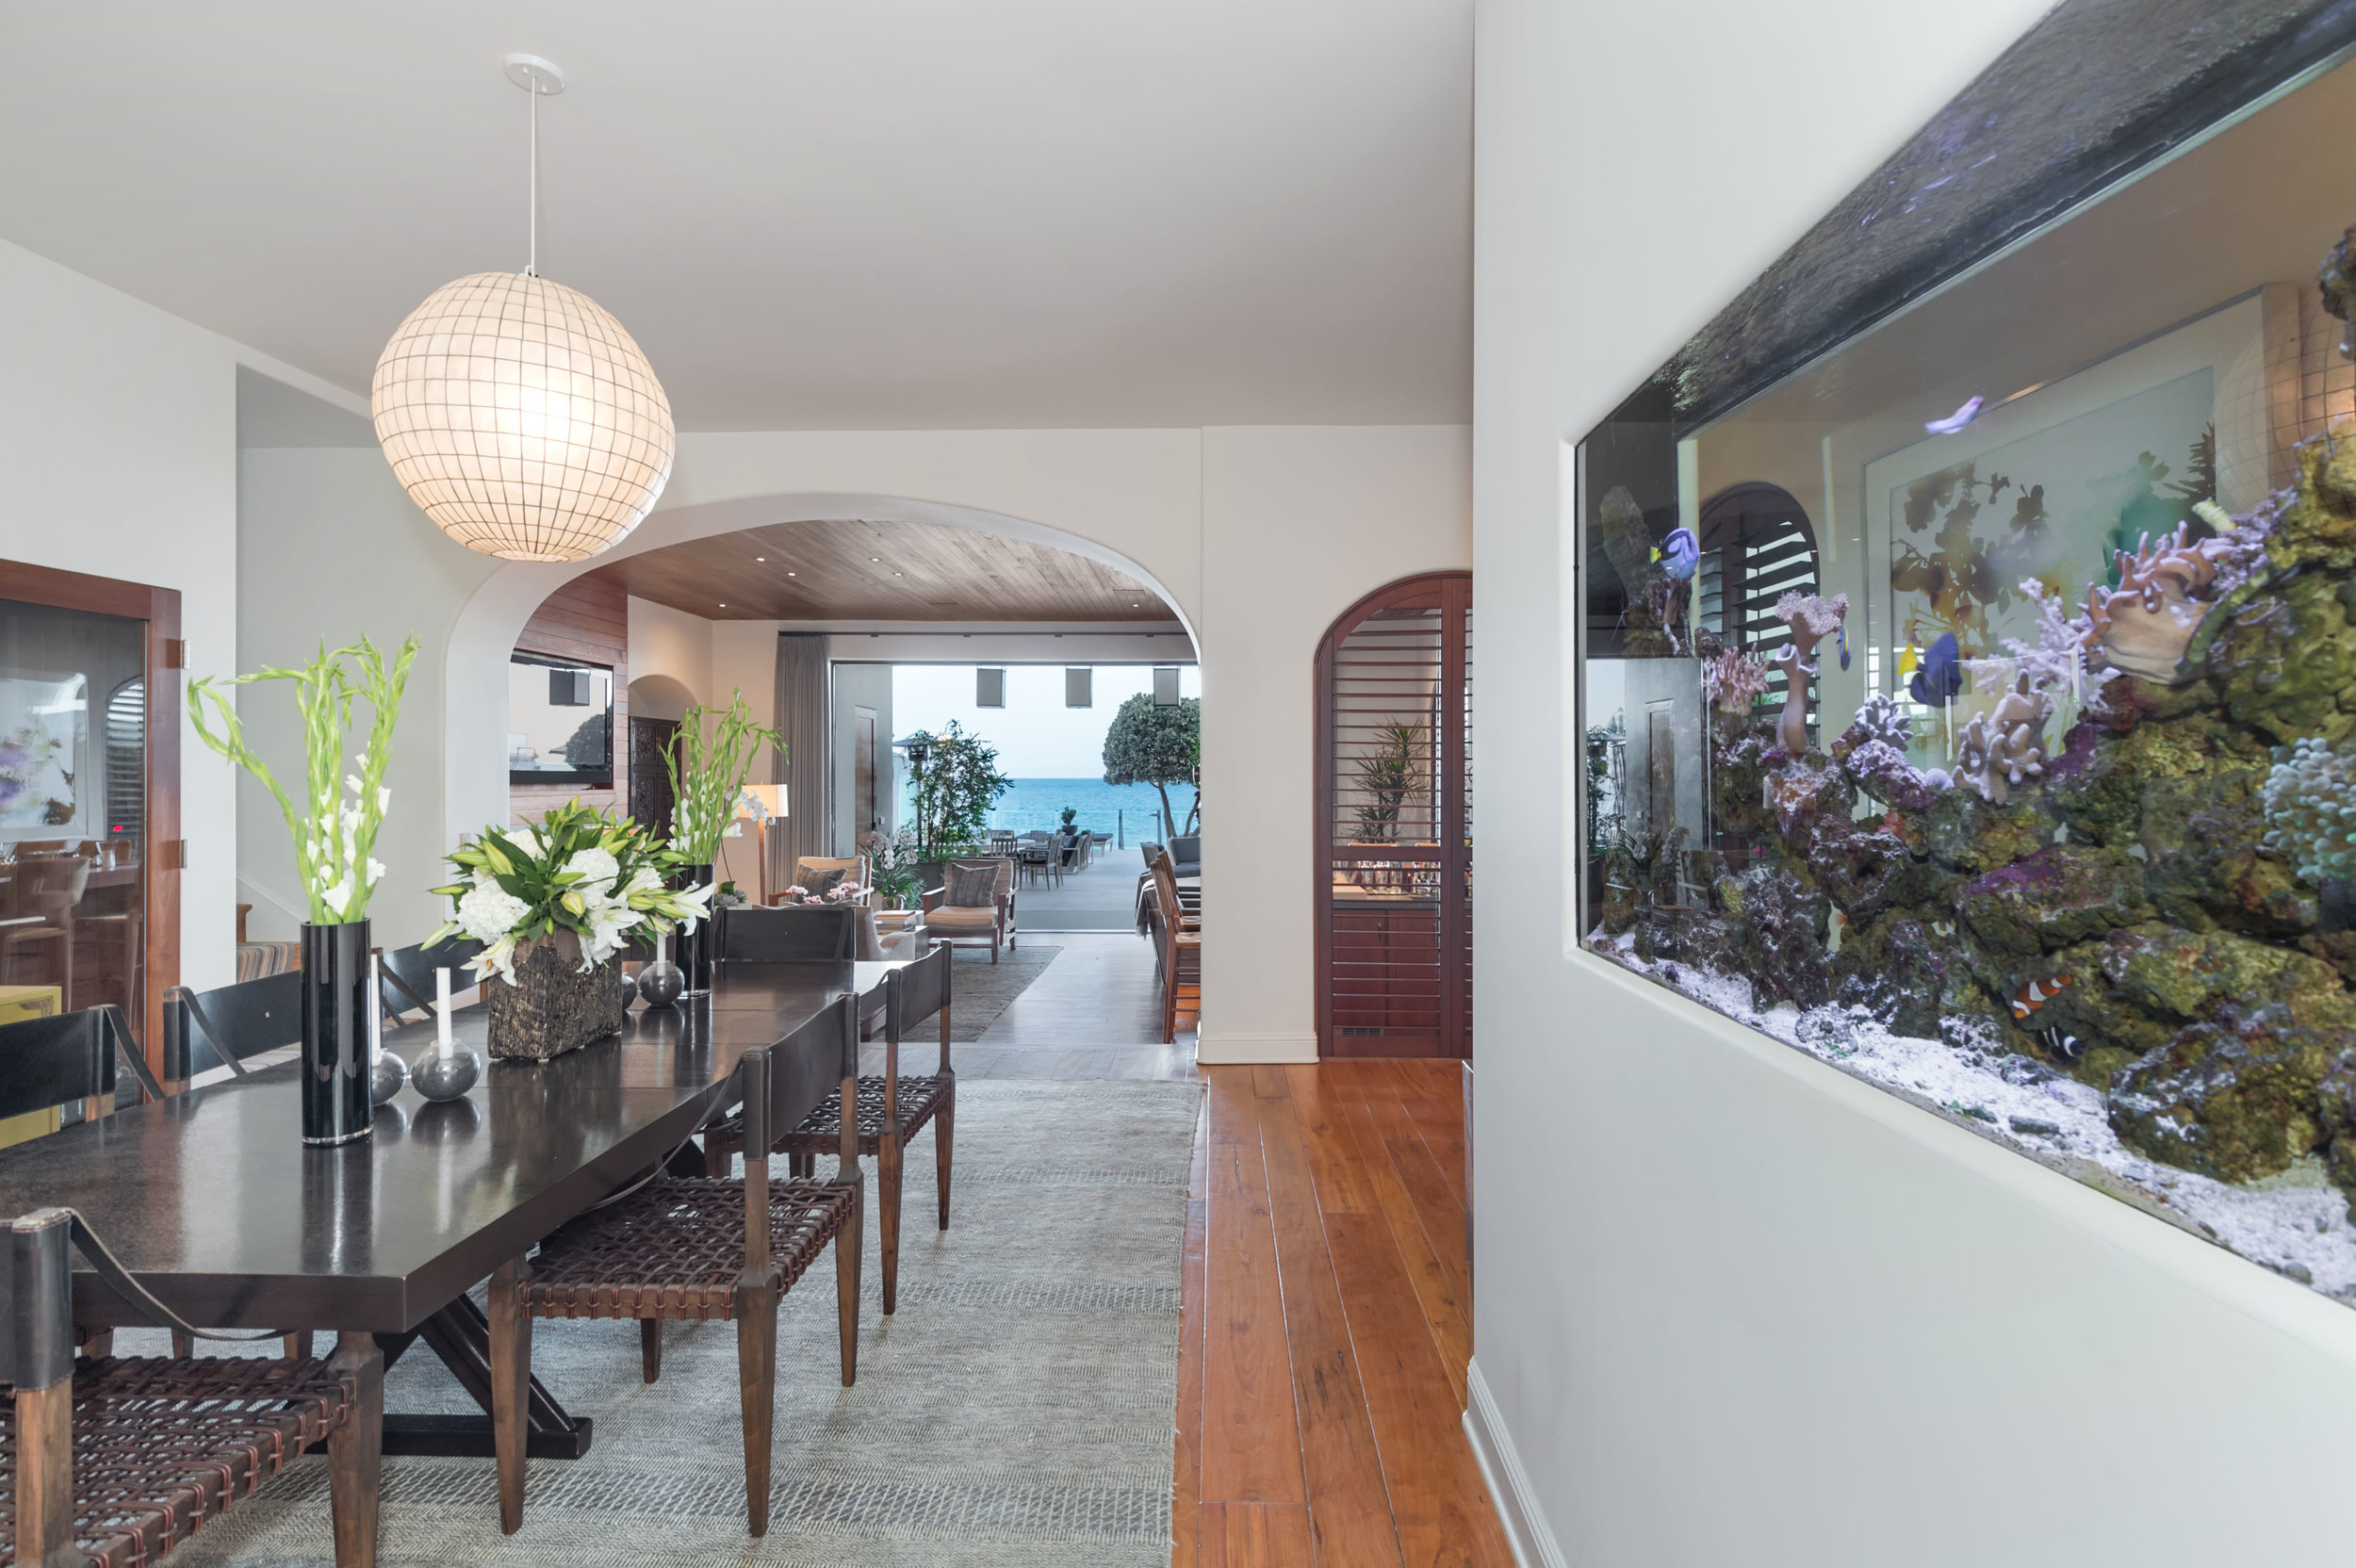 012 Dining 23930 Malibu Road For Sale Lease The Malibu Life Team Luxury Real Estate.jpg